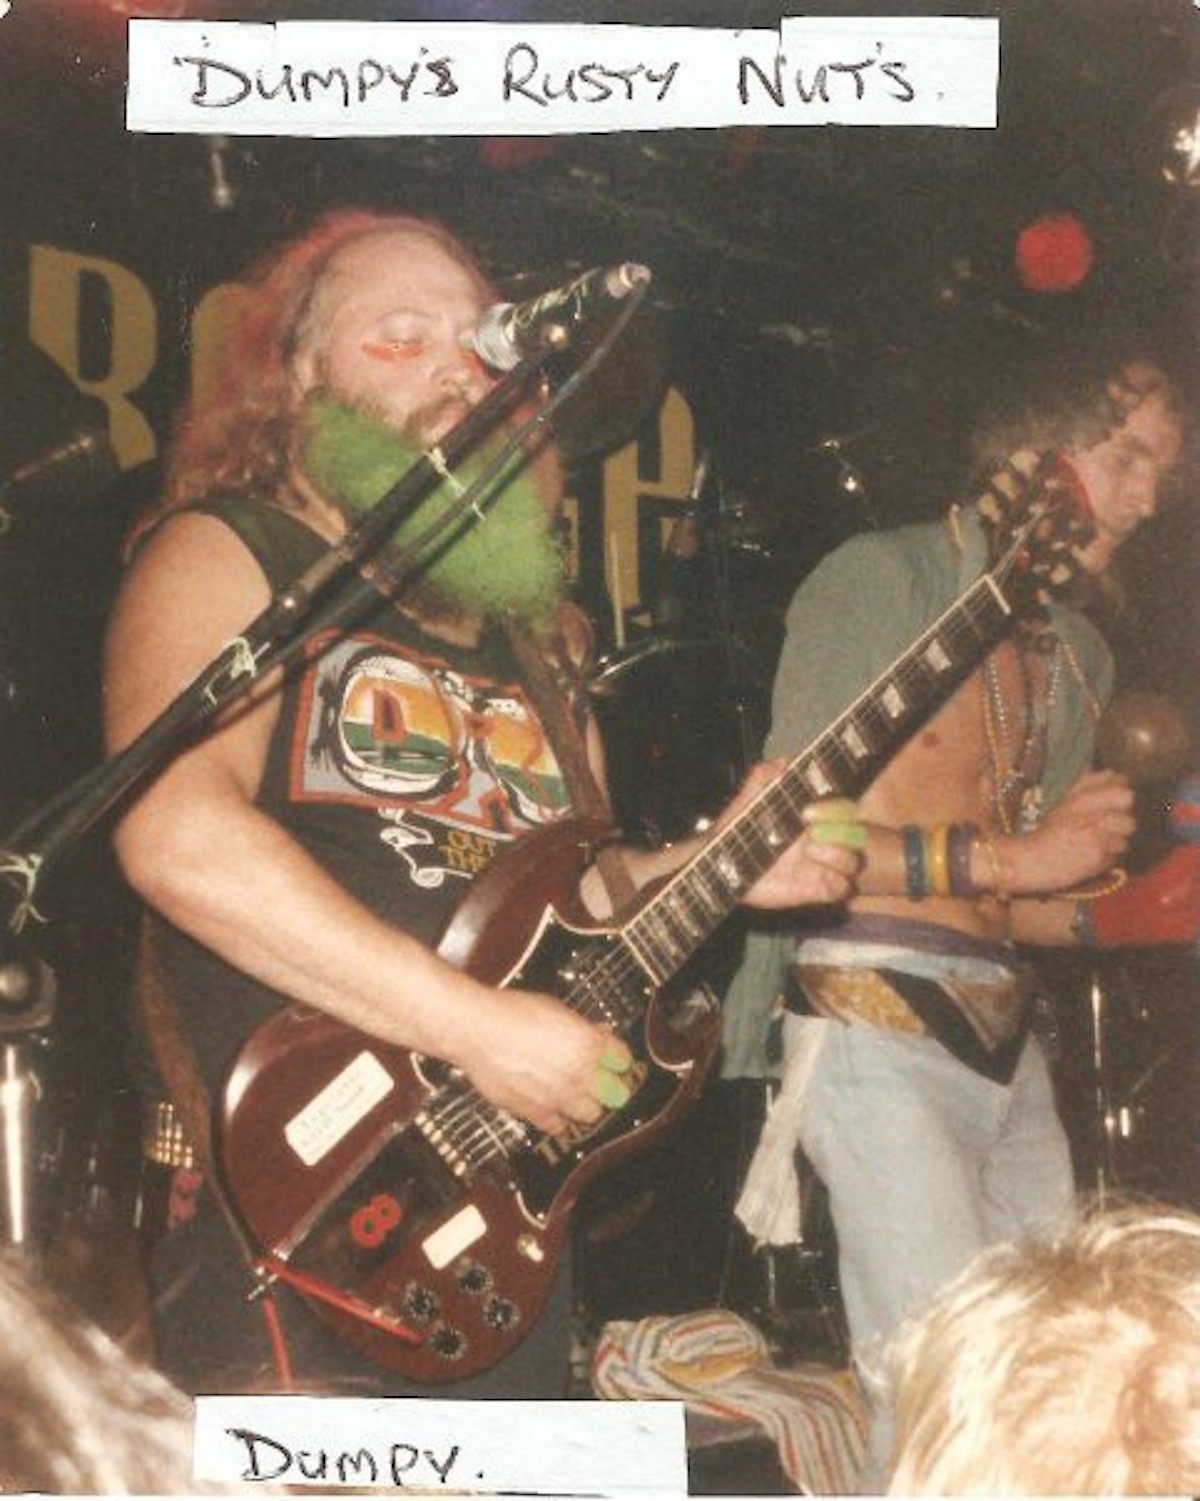 Jellett onstage at The Marquee, with Dumpy's Rusty Nuts, 1986 (Source- Elisabeth Anne)